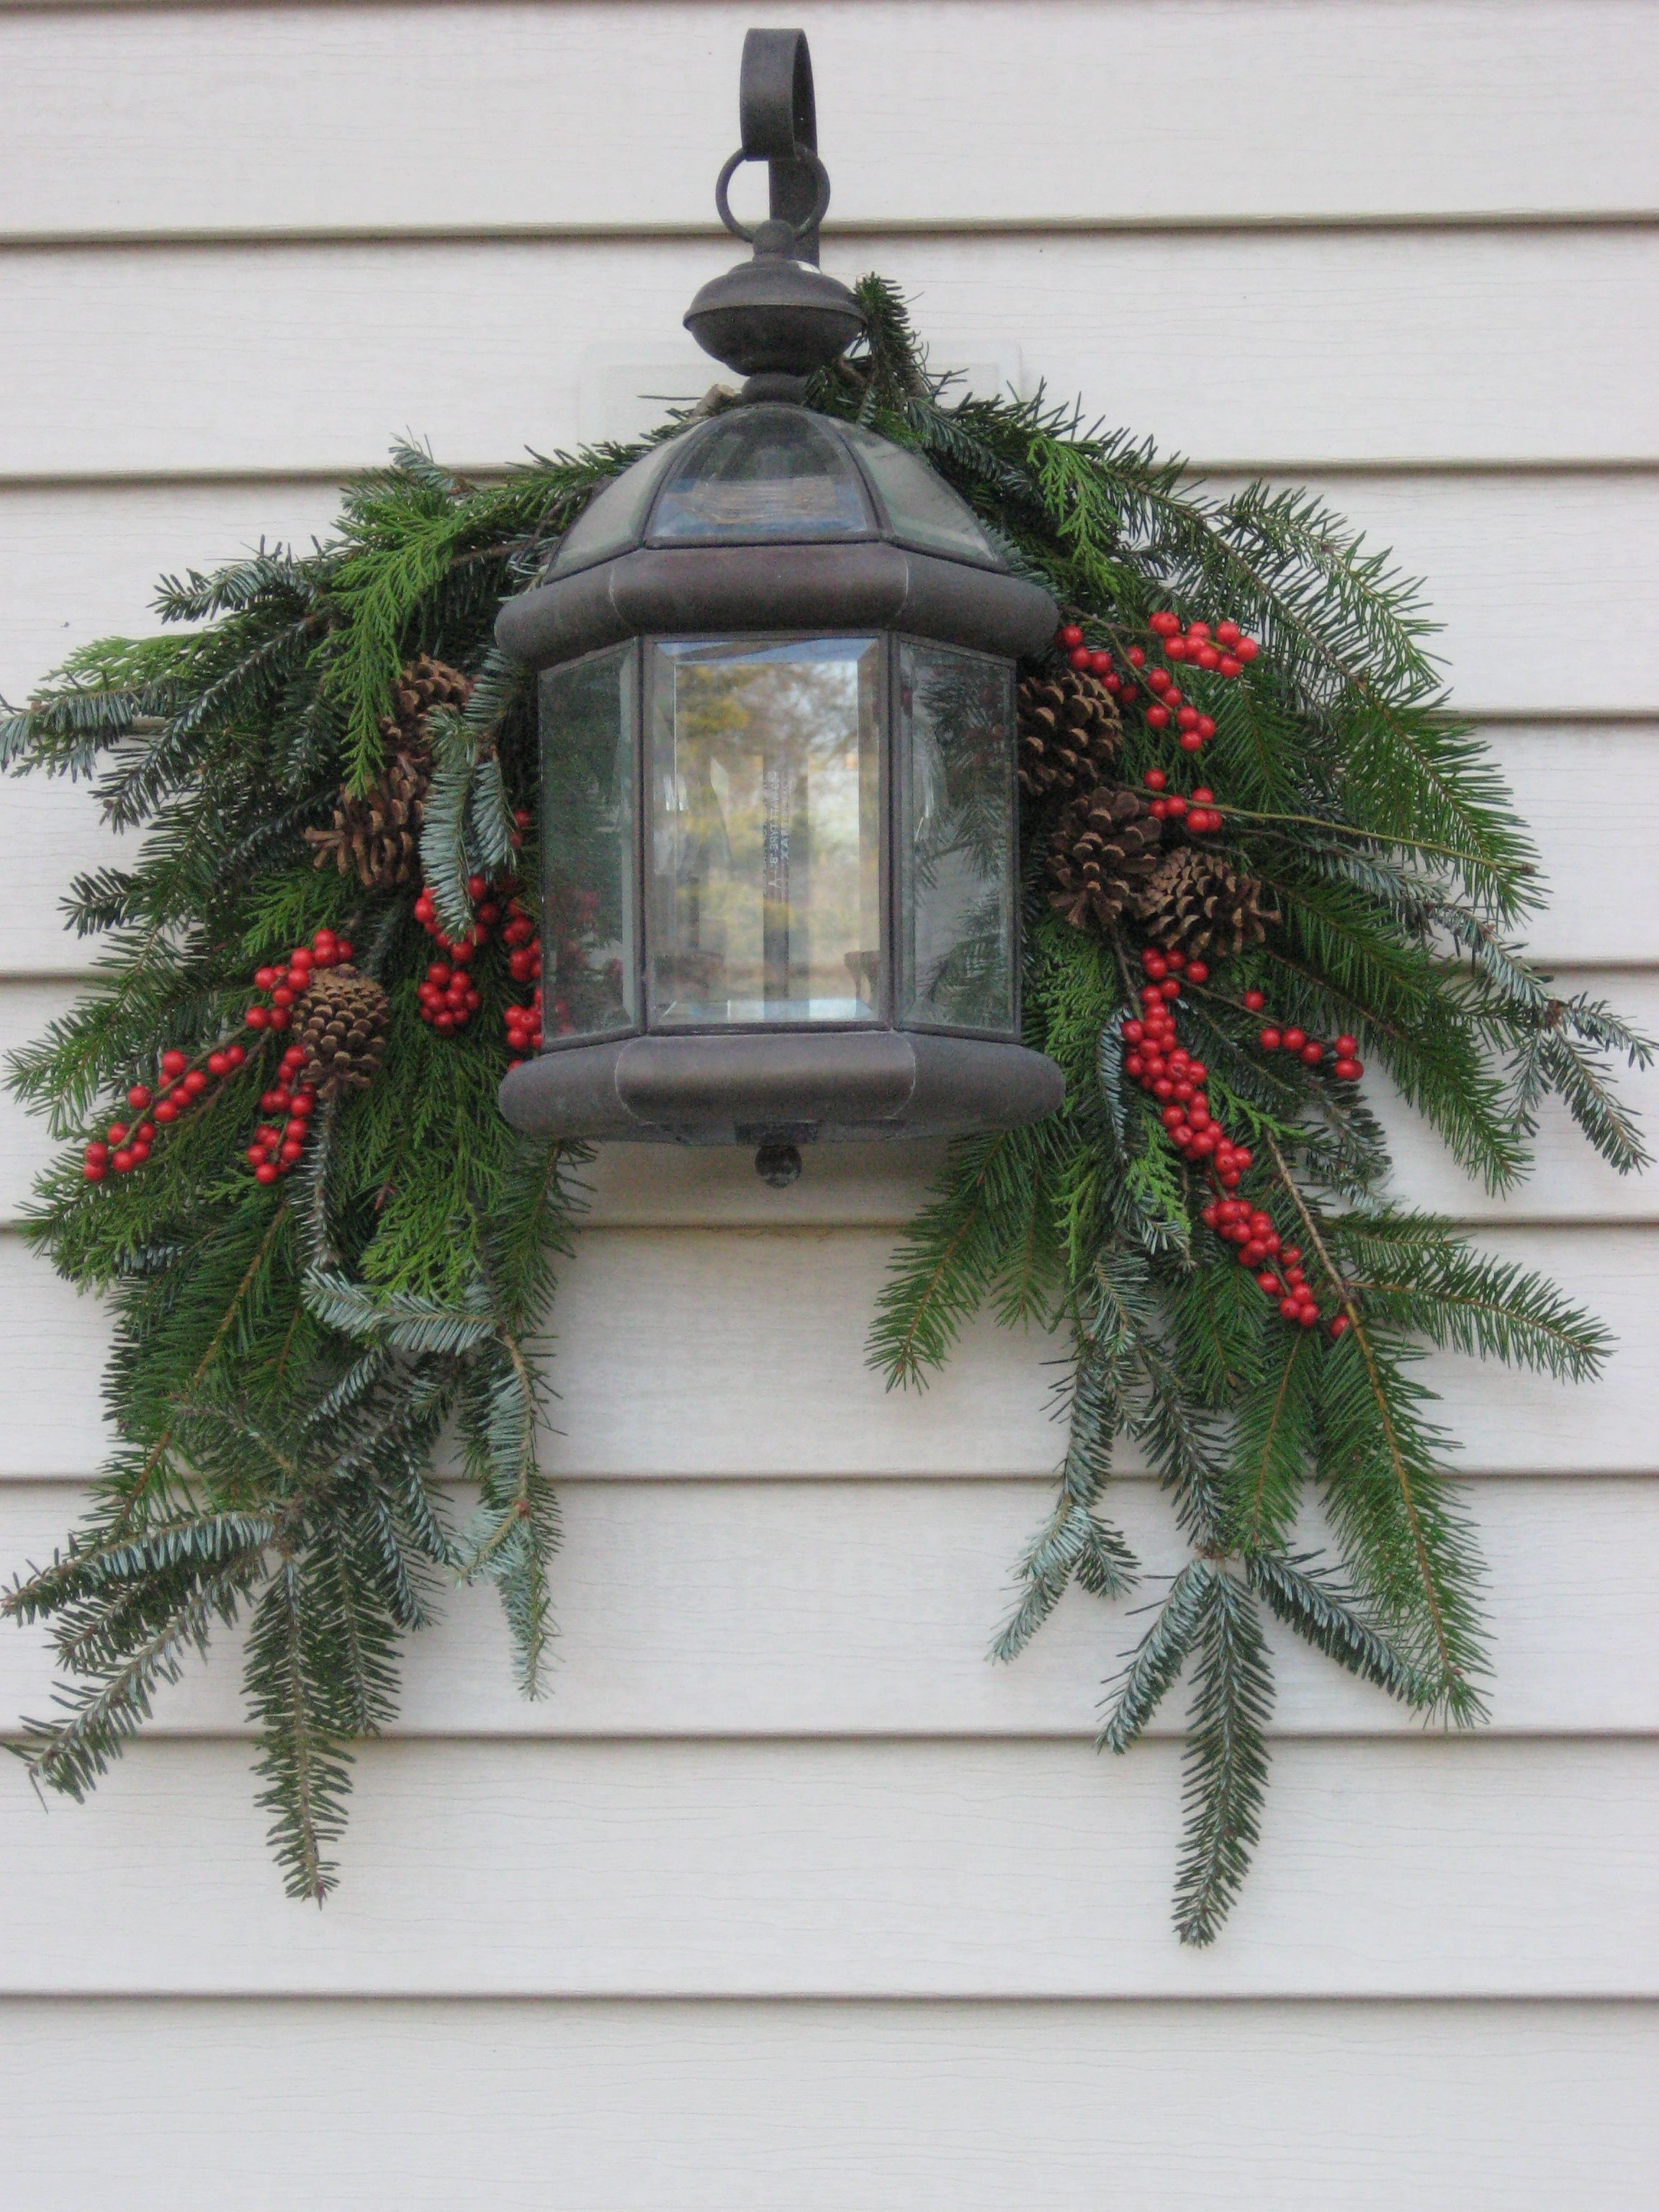 Current Outdoor Lanterns For Christmas With Regard To A Guide To Beautiful (And Not Tacky) Outdoor Holiday Decor (View 2 of 20)